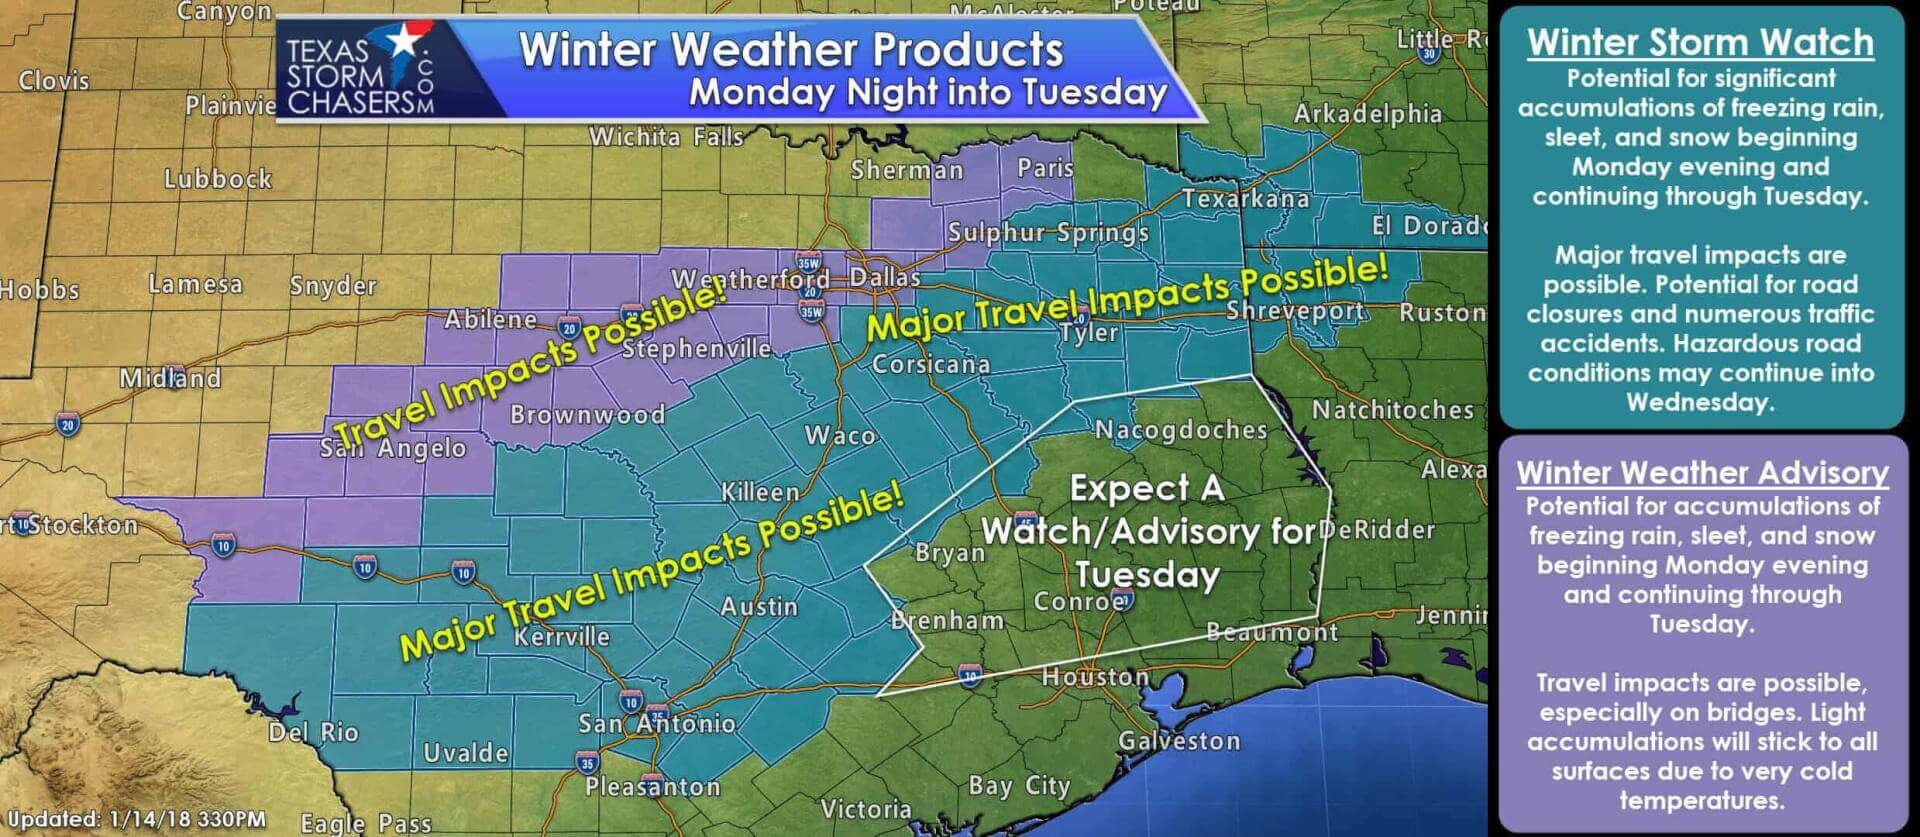 Sunday Evening Winter Weather Update - Still On Track for a